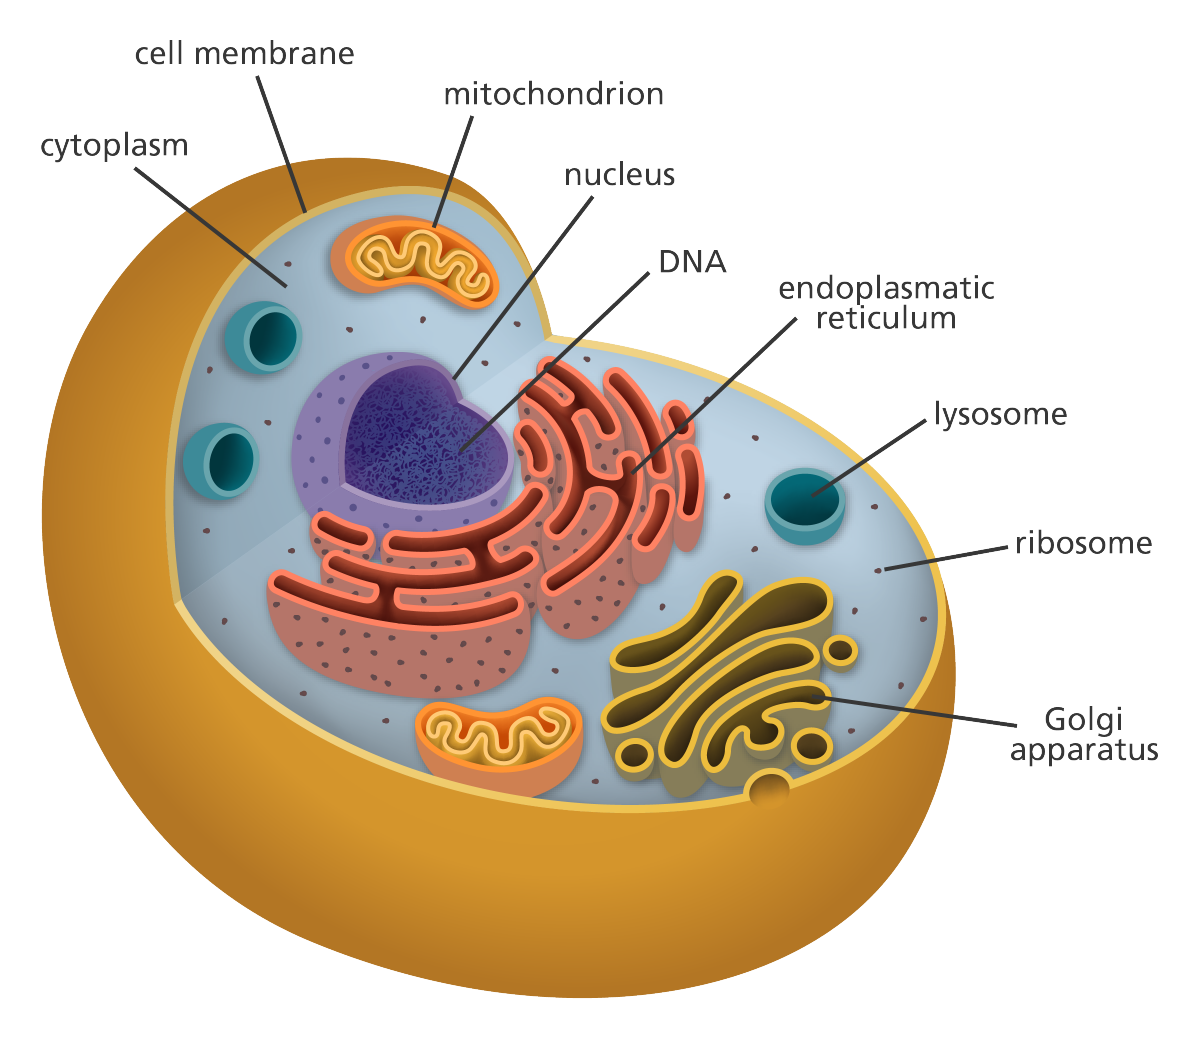 mutations on mitochondria inside the human body The mitochondrial dna mutations that cause this condition and function of the body's systems these mutations disrupt the human mitochondrial.